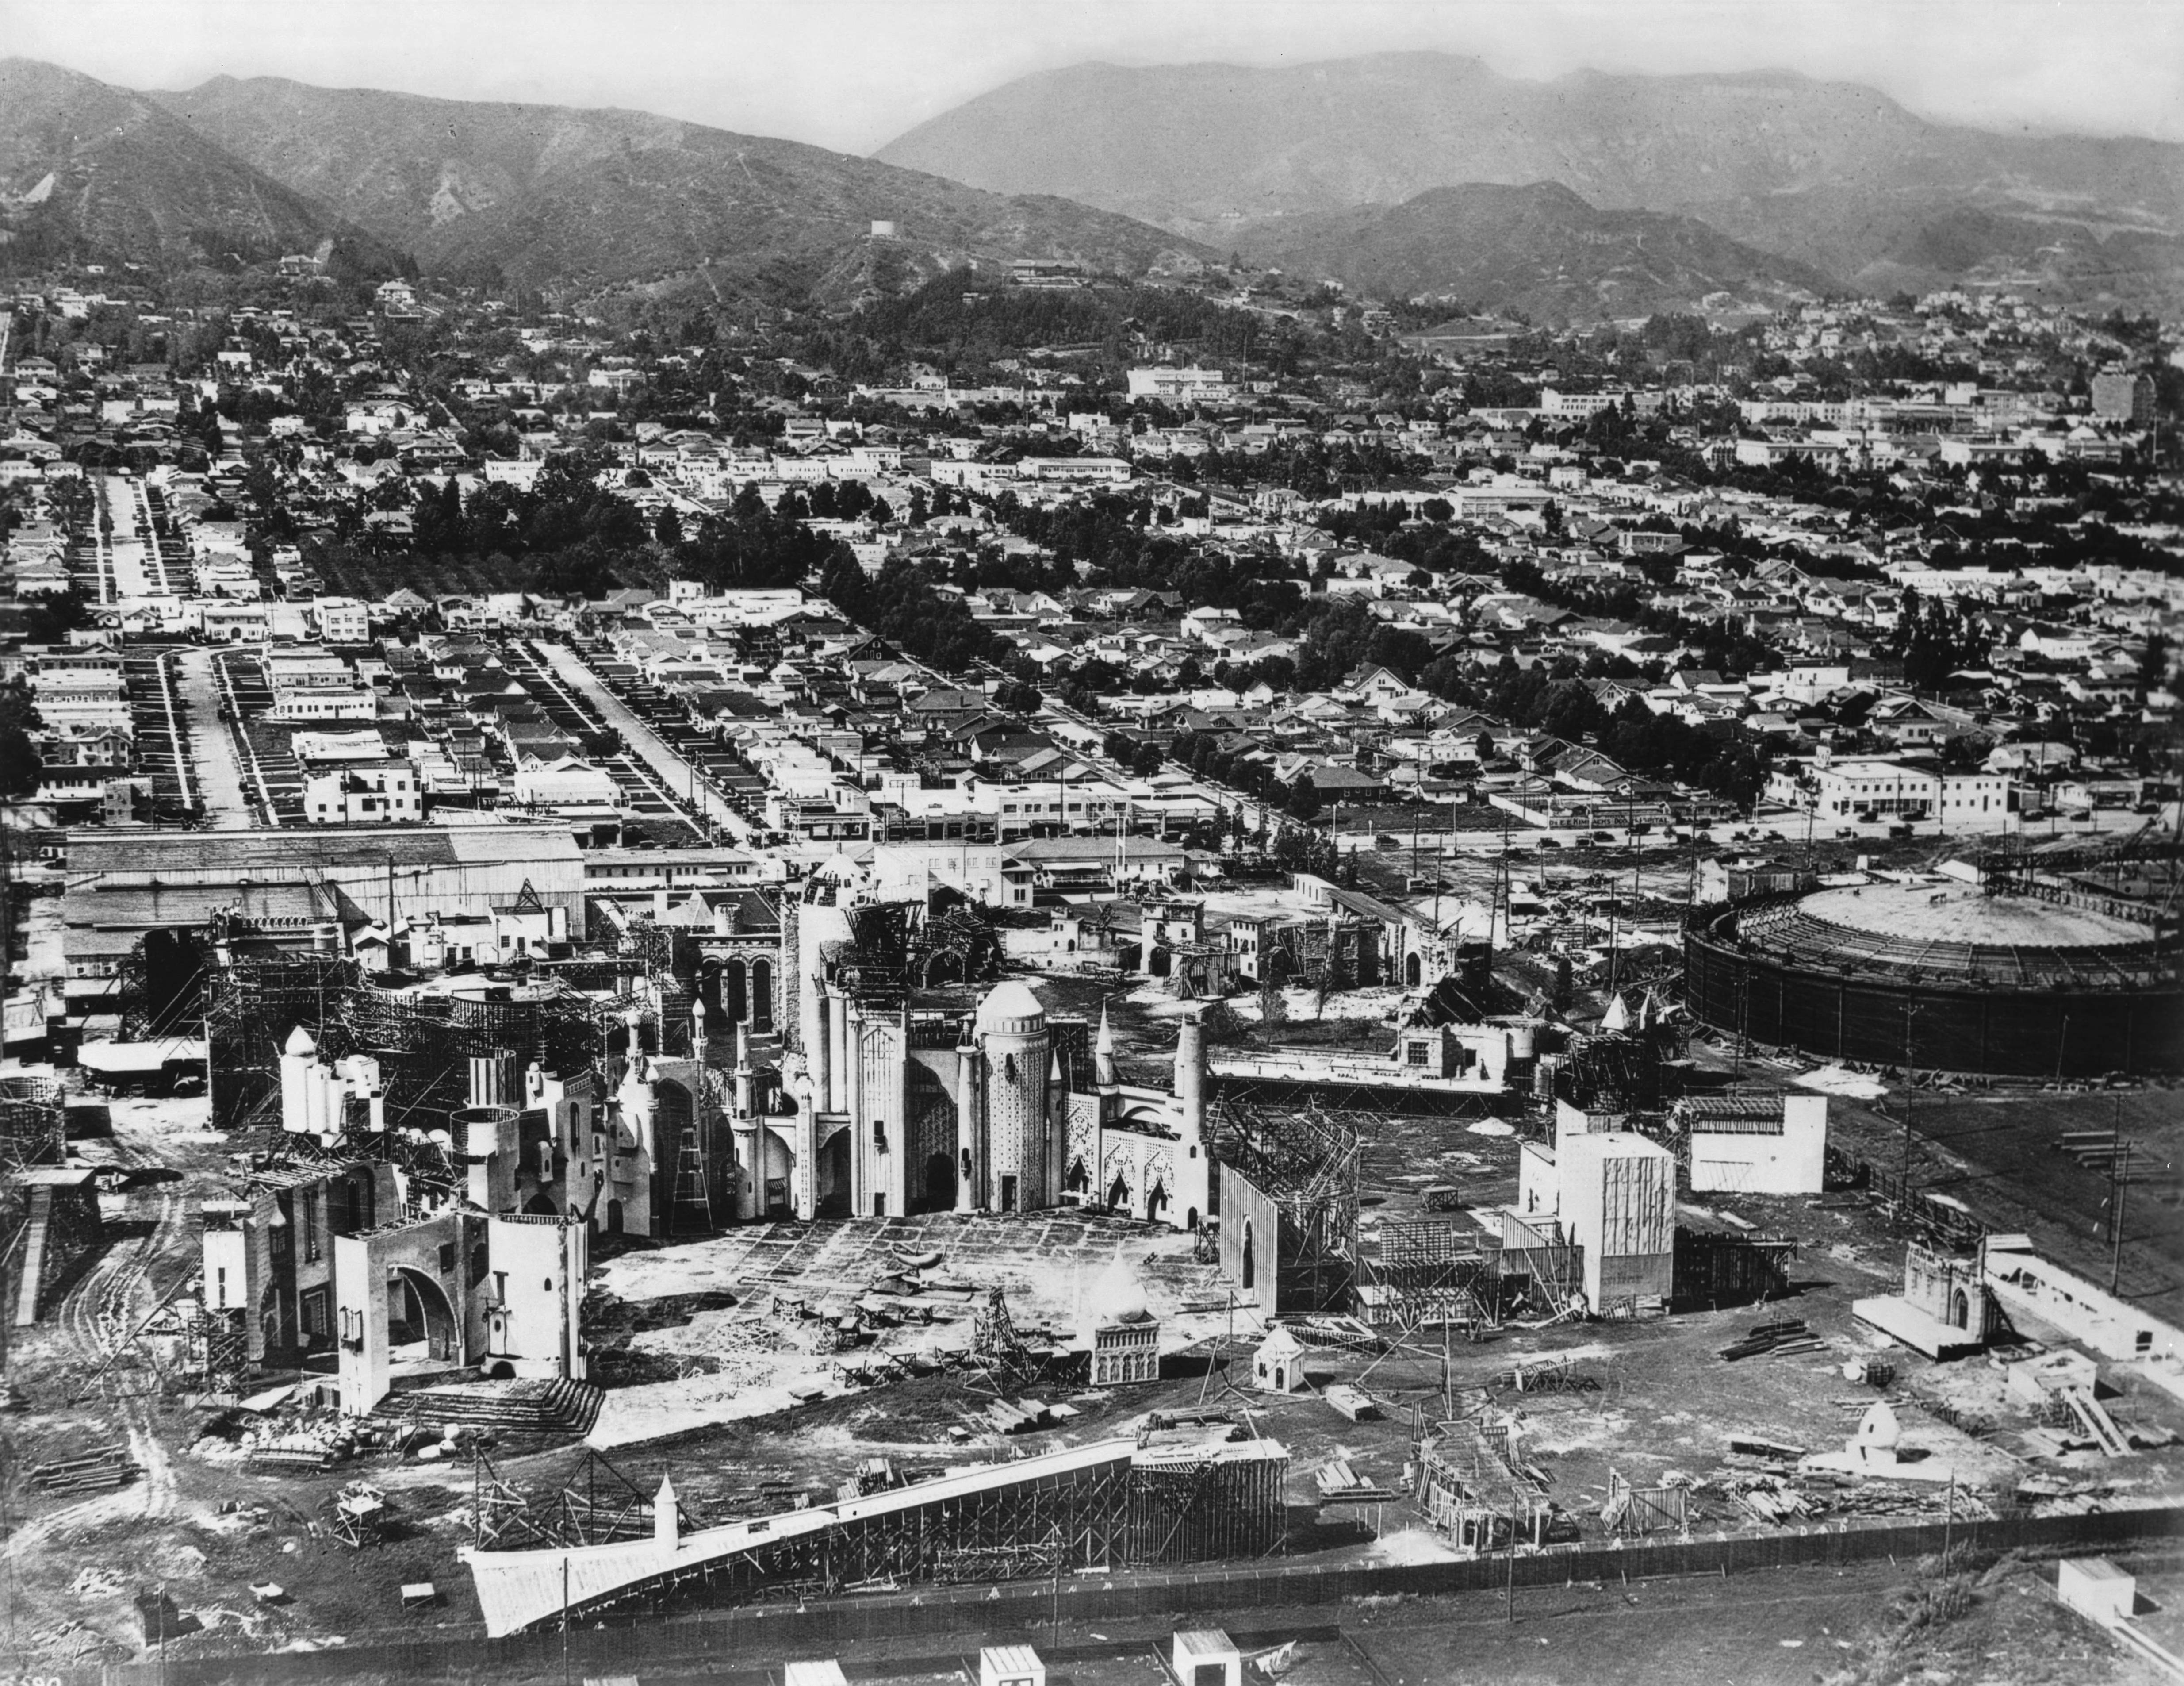 Aerial view of Hollywood, showing the Pickford-Fairbanks Studio on Santa Monica Boulevard, California, 1926